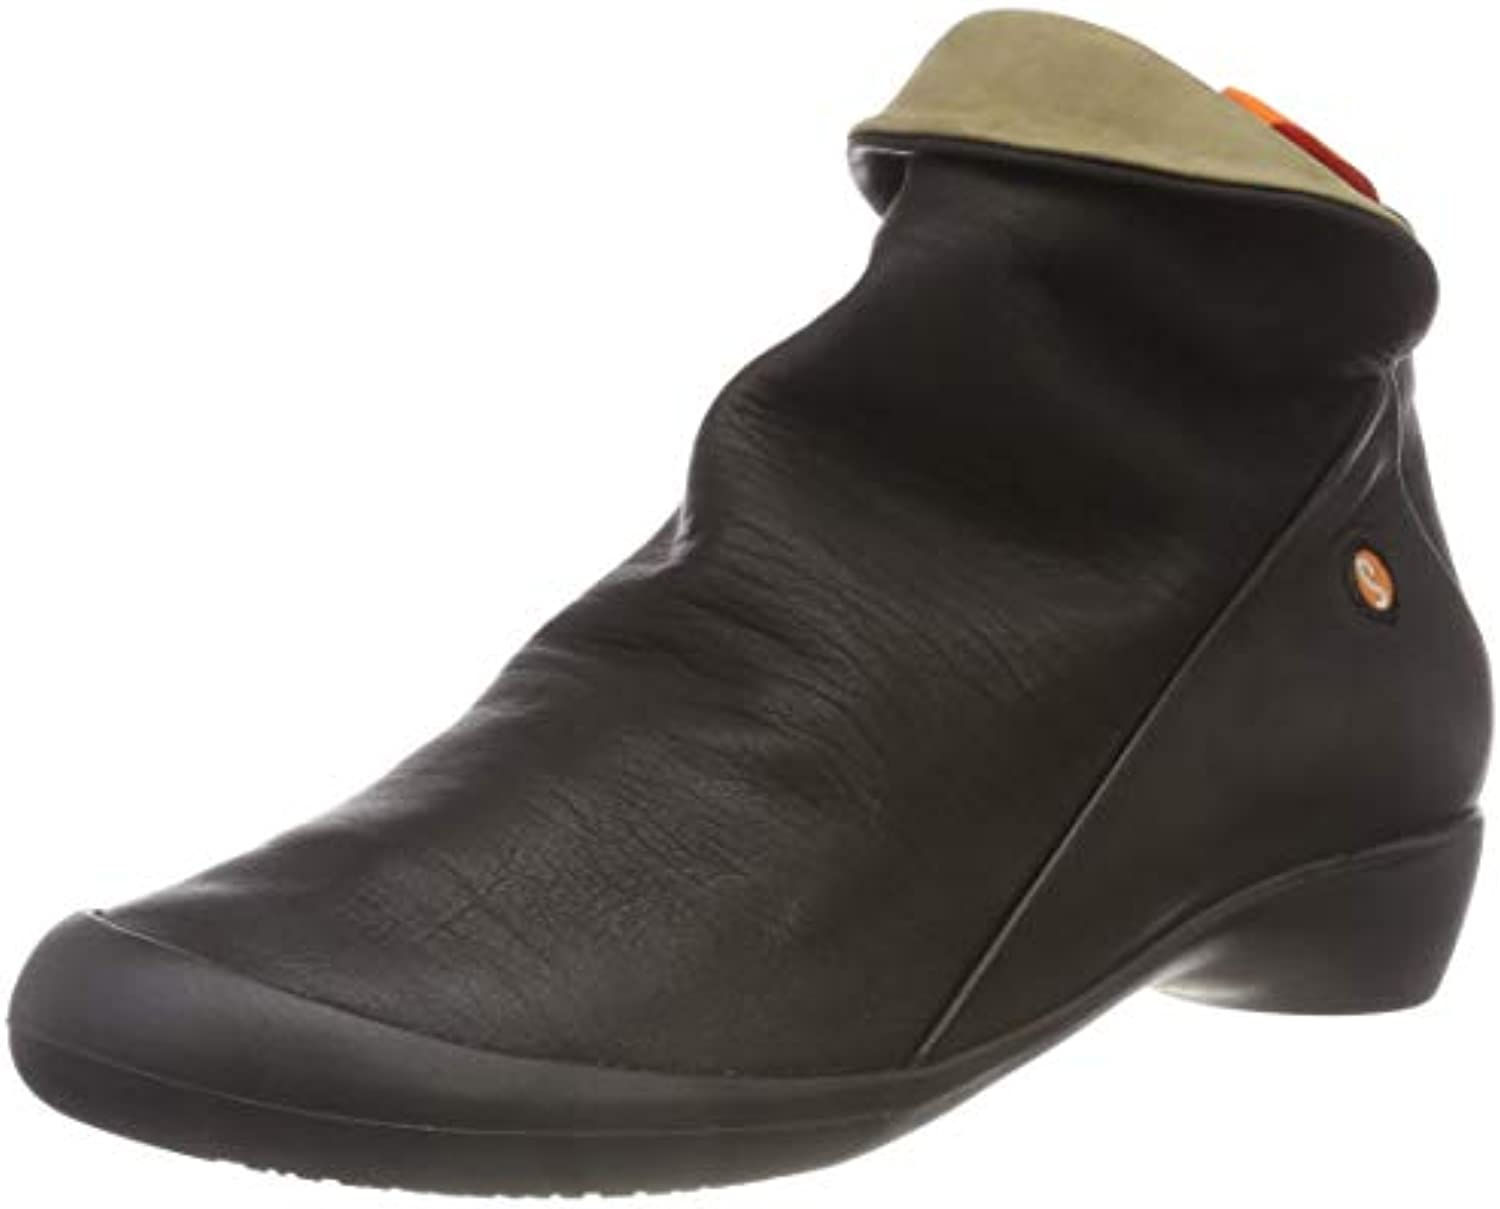 Softinos Combi, Farah Smooth Combi, Softinos Bottines Femme 8471f8